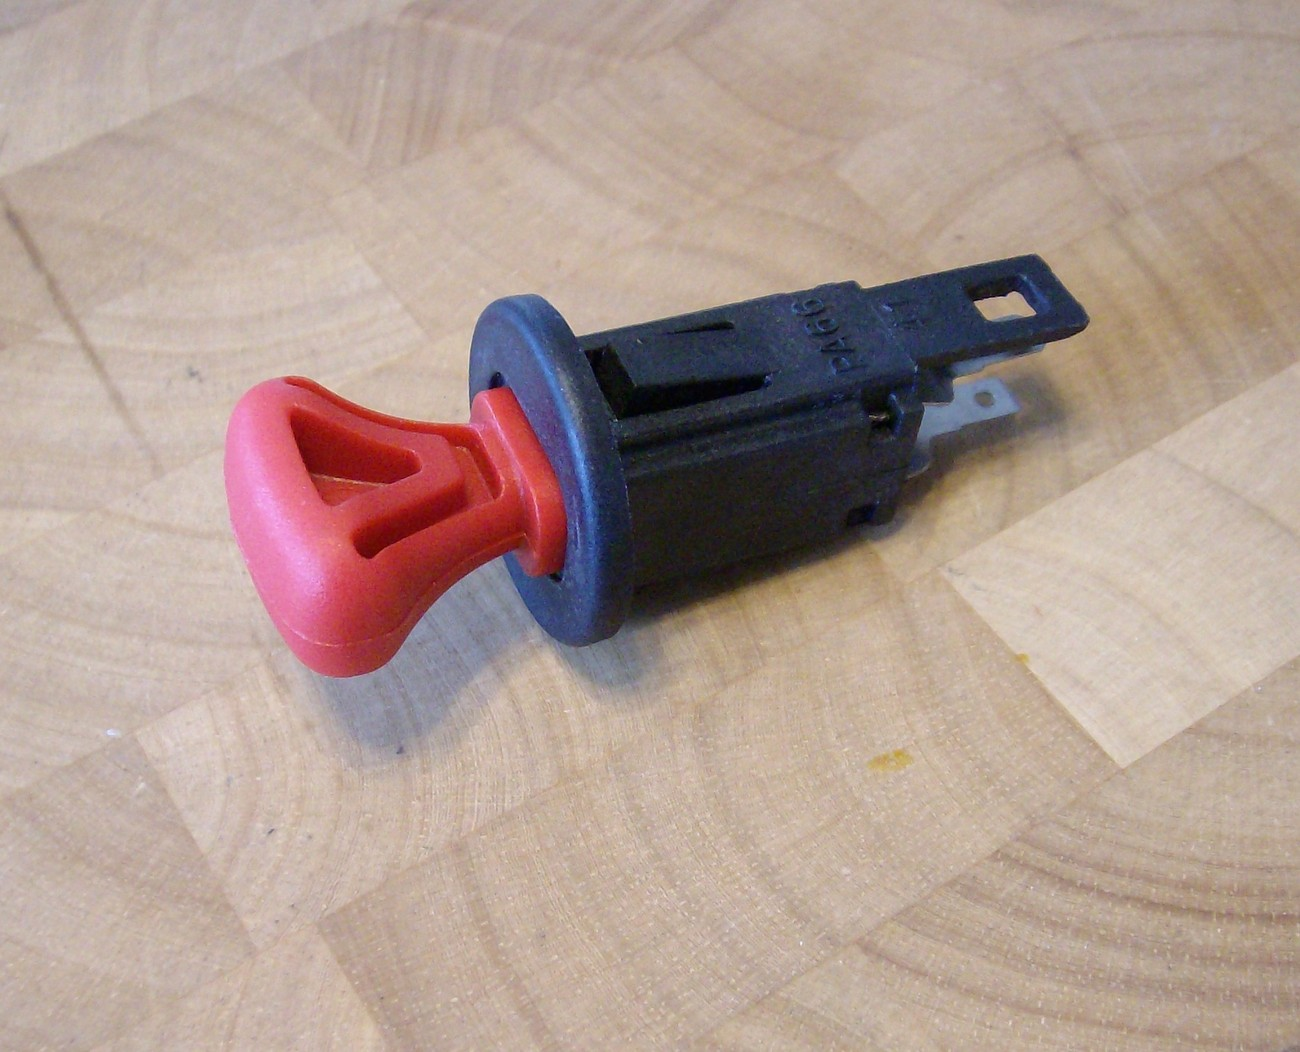 Primary image for Ignition switch with key for MTD, Craftsman snowblower snowthrower 951-10637